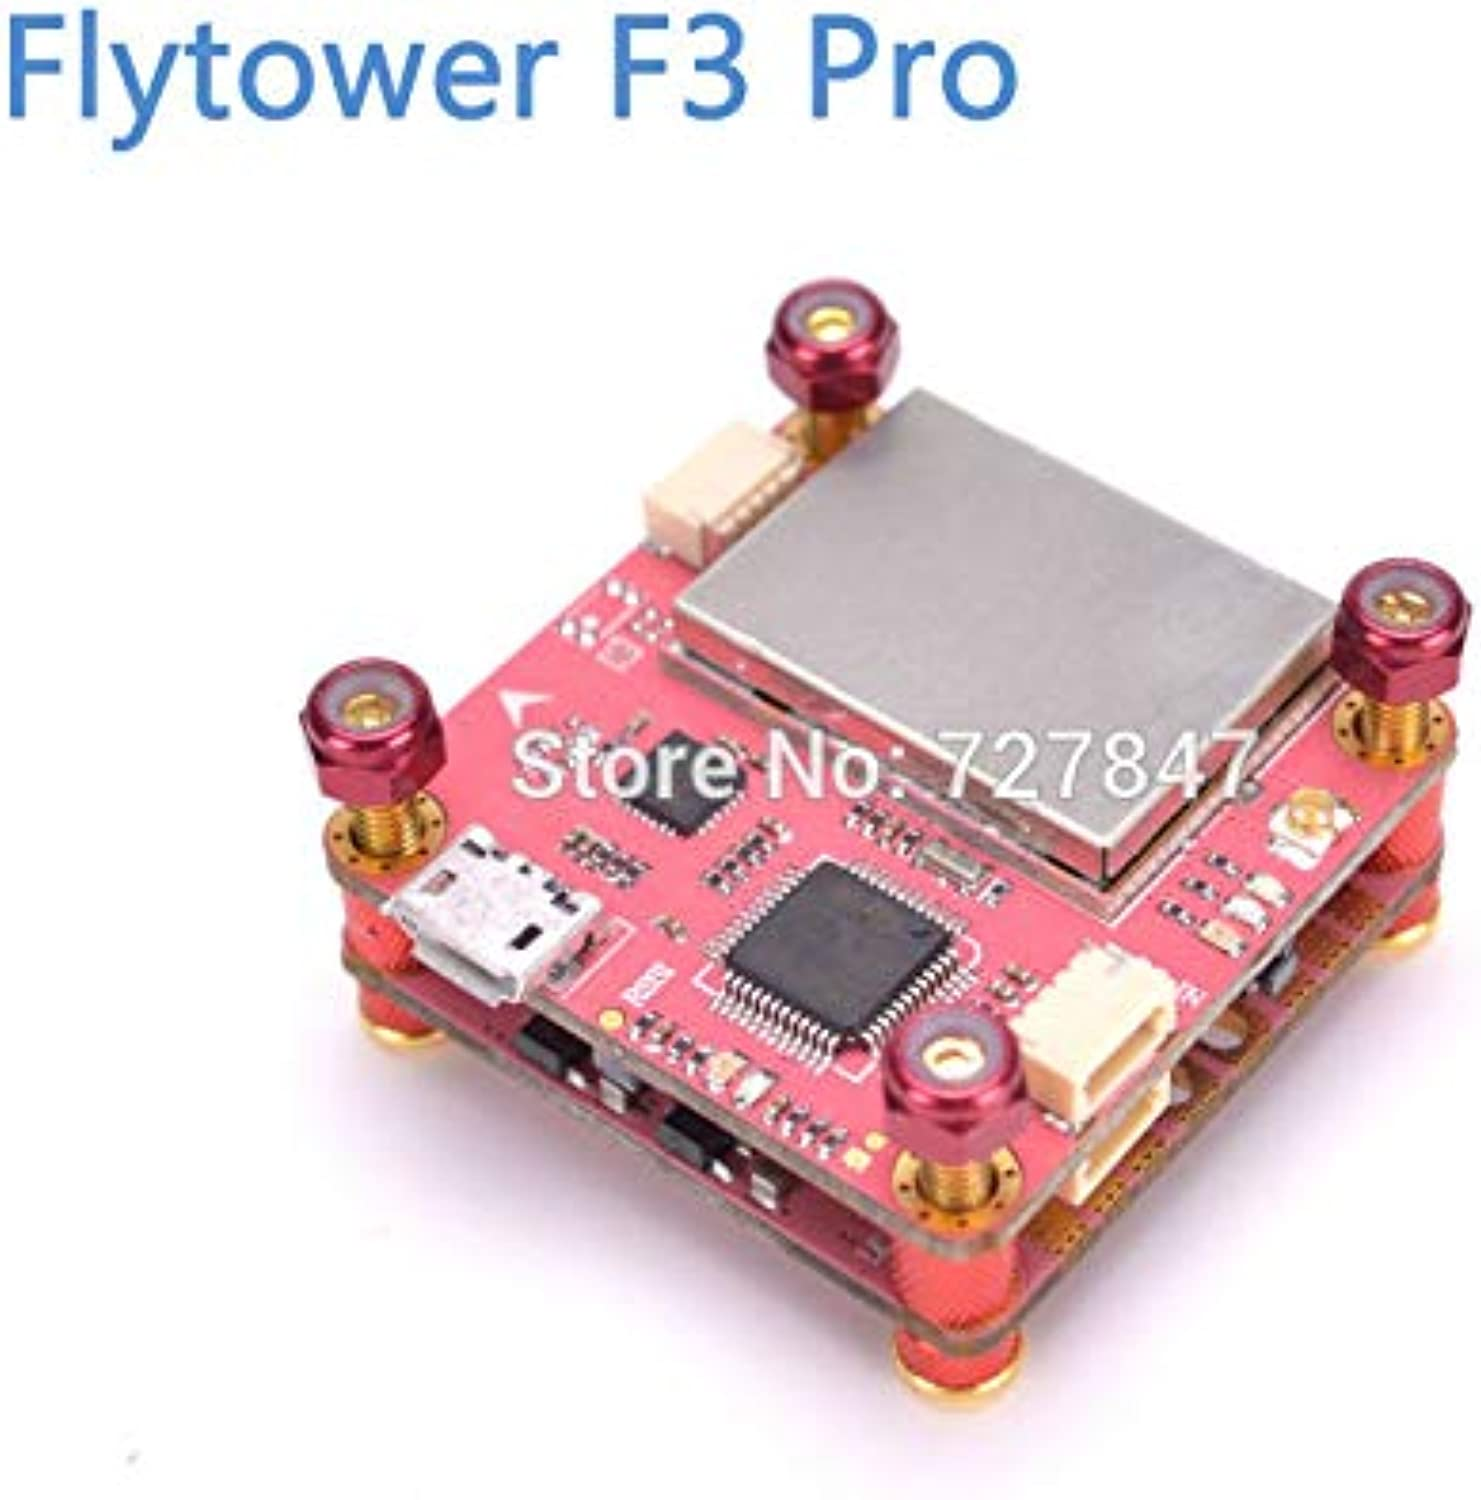 Laliva Flytower F3 Pro Flight Control Integrated OSD + 4 in 1 4in1 40A ESC _S 24s Support Dshot 150 300 600 for FPV Racing Drone